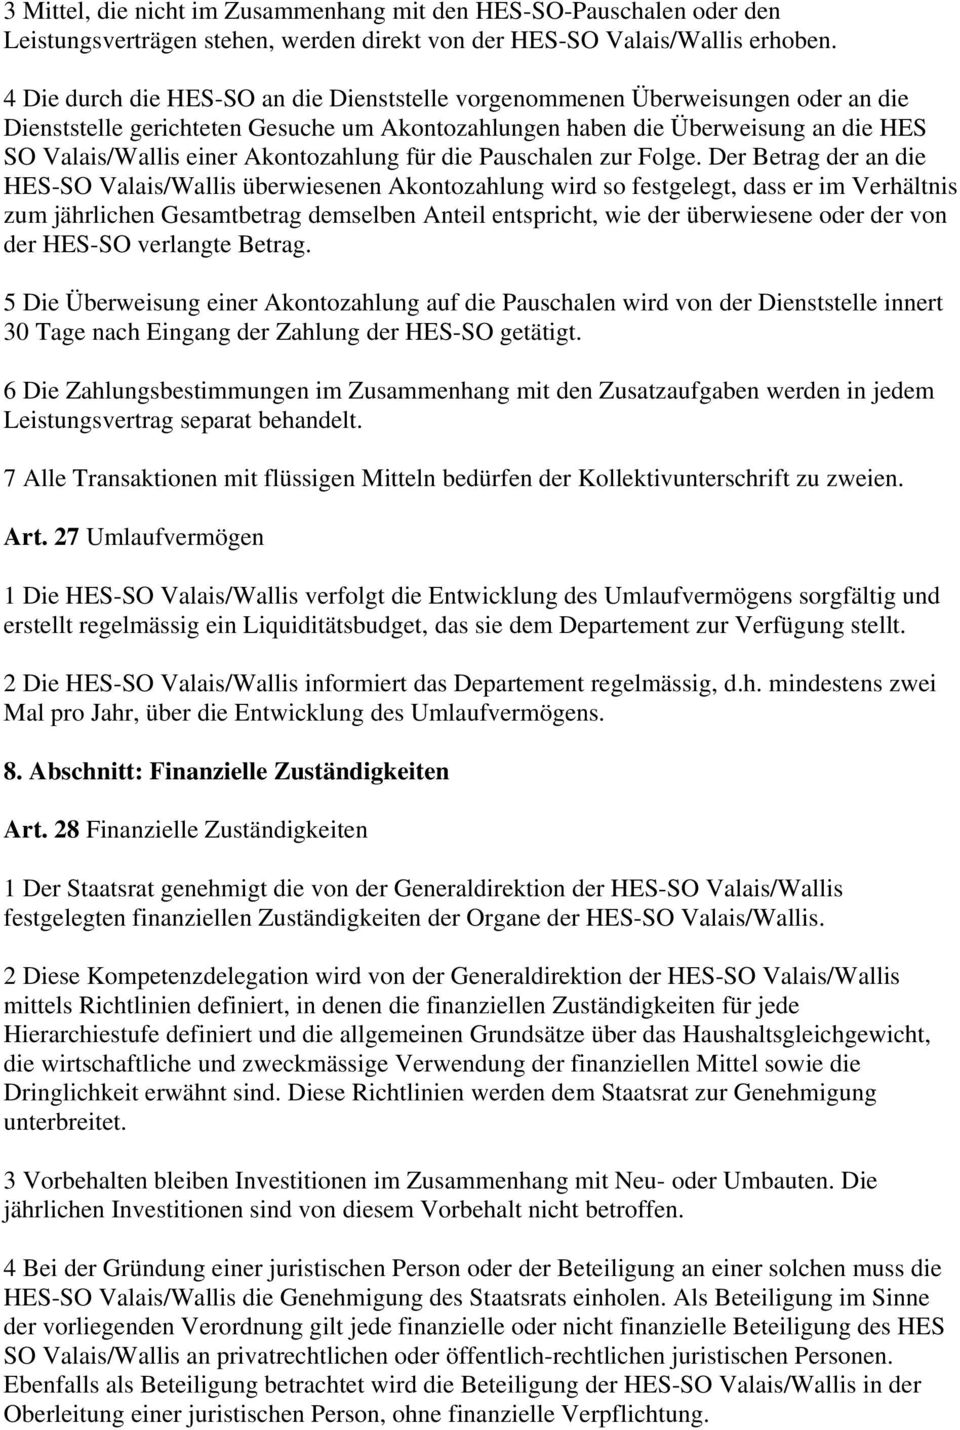 Beste Jährliche Aktionsplanvorlage Galerie - Entry Level Resume ...